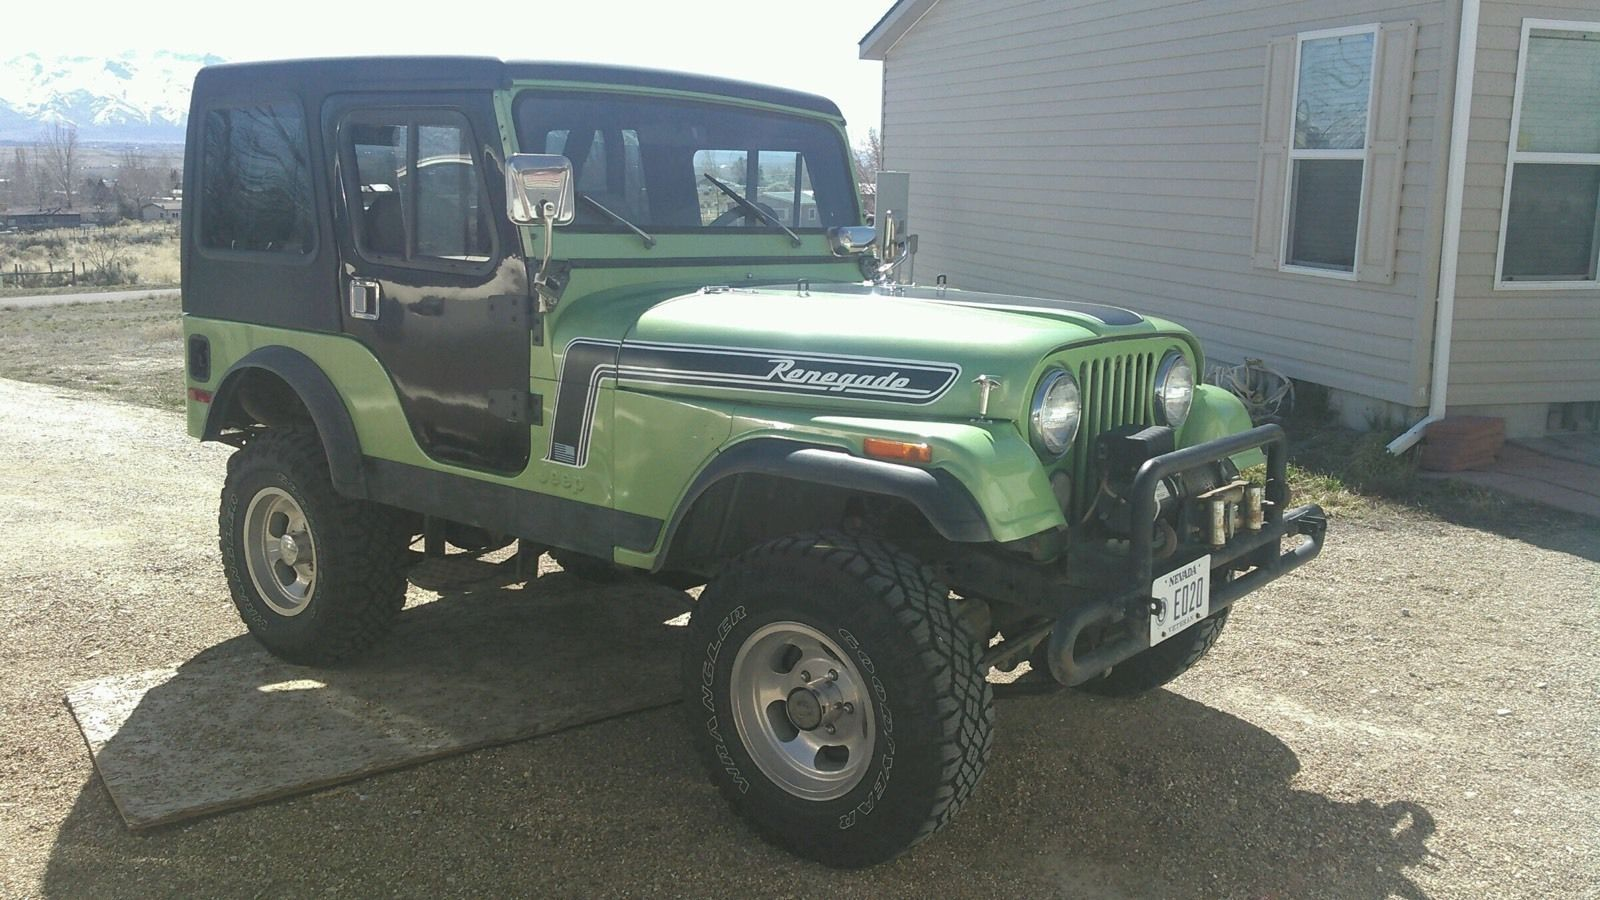 jeep cj5 hard top and two doors with glass windows jeep cj hard Custom Jeep CJ5 jeep cj5 hard top and two doors with glass windows